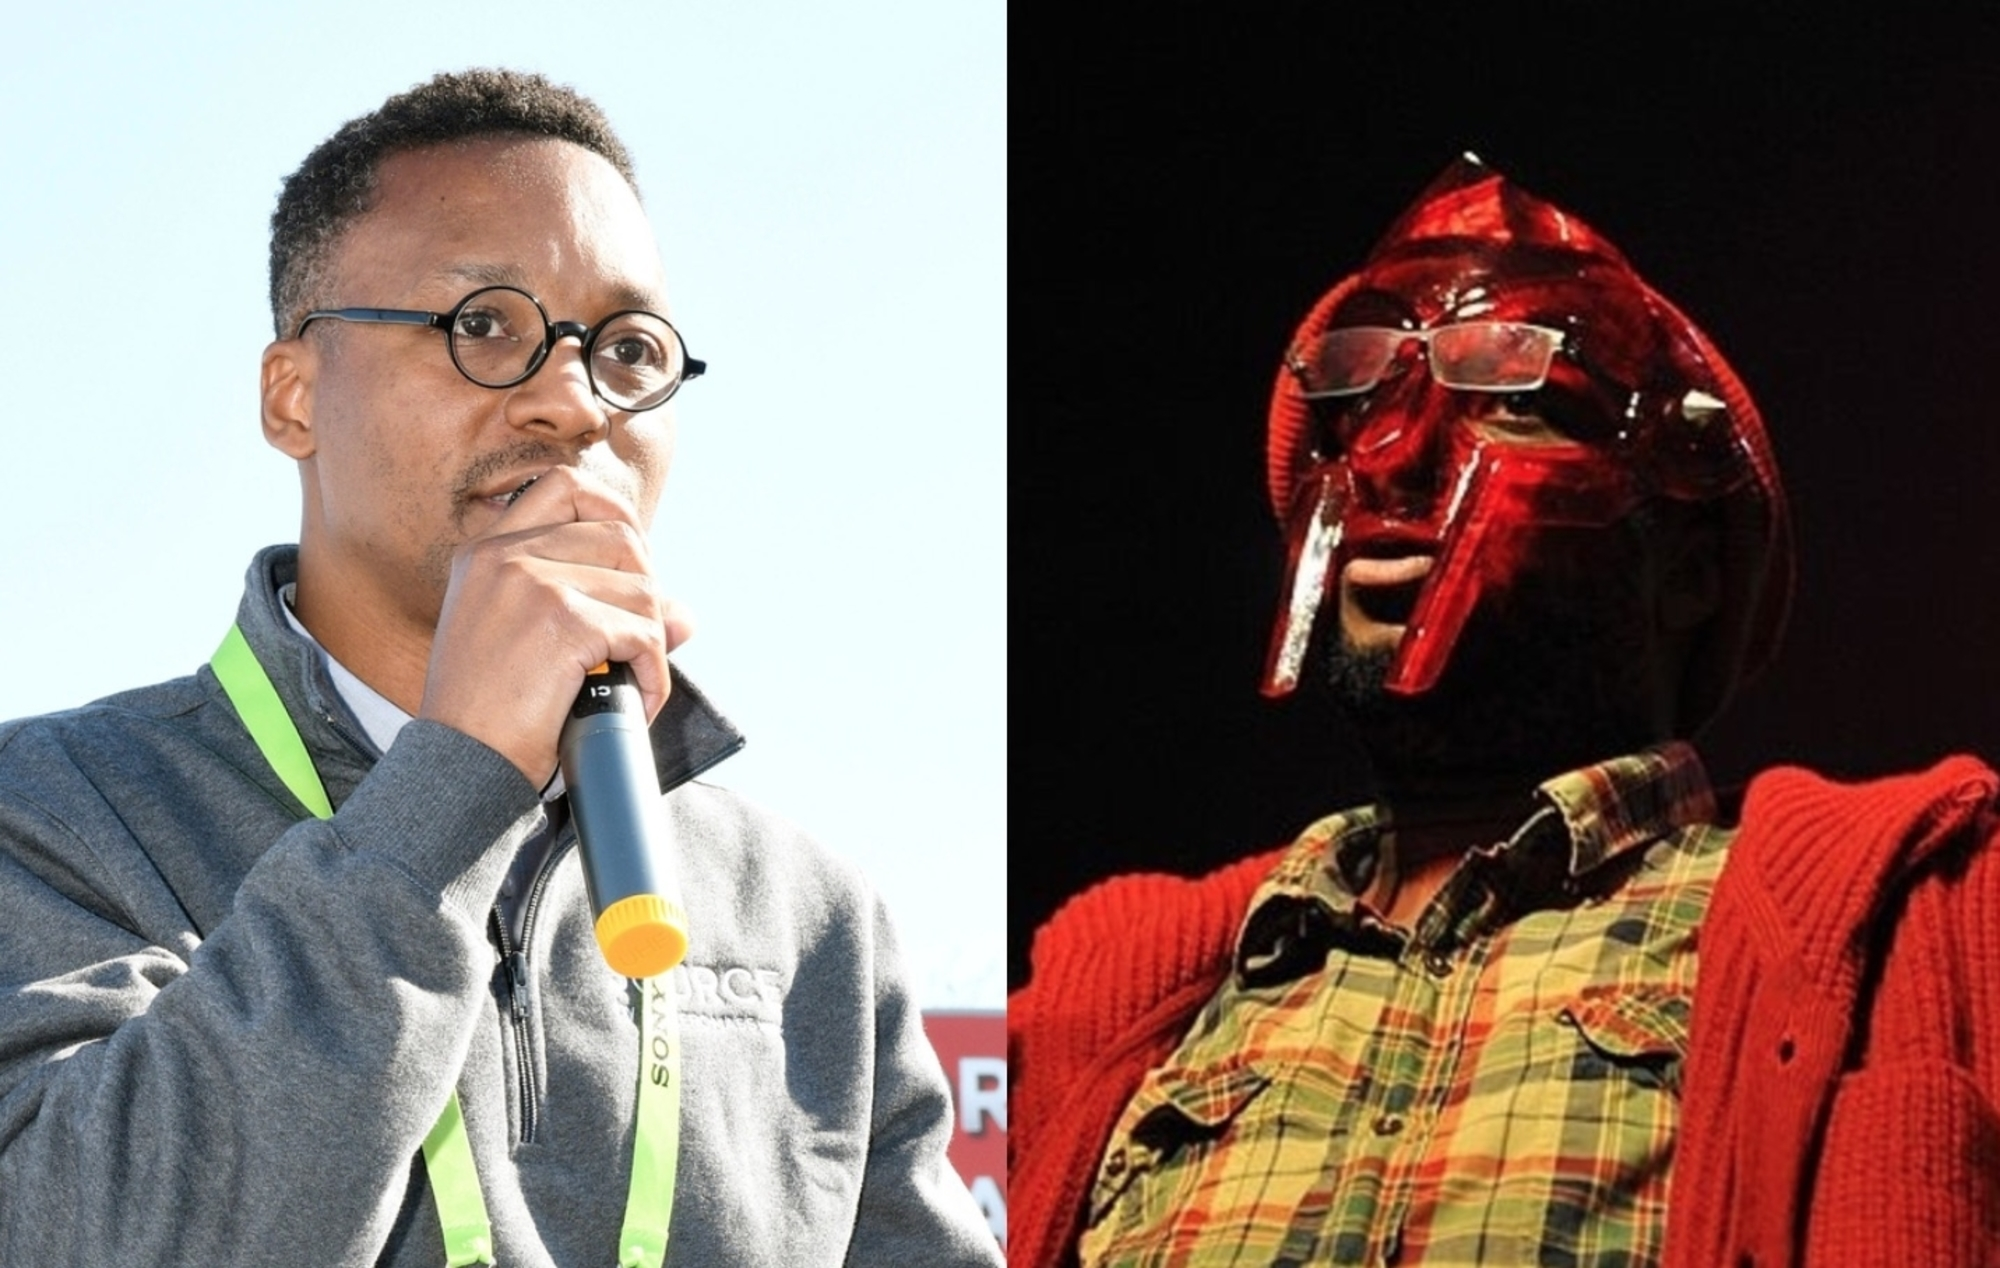 Lupe Fiasco pays tribute to MF DOOM with new freestyle